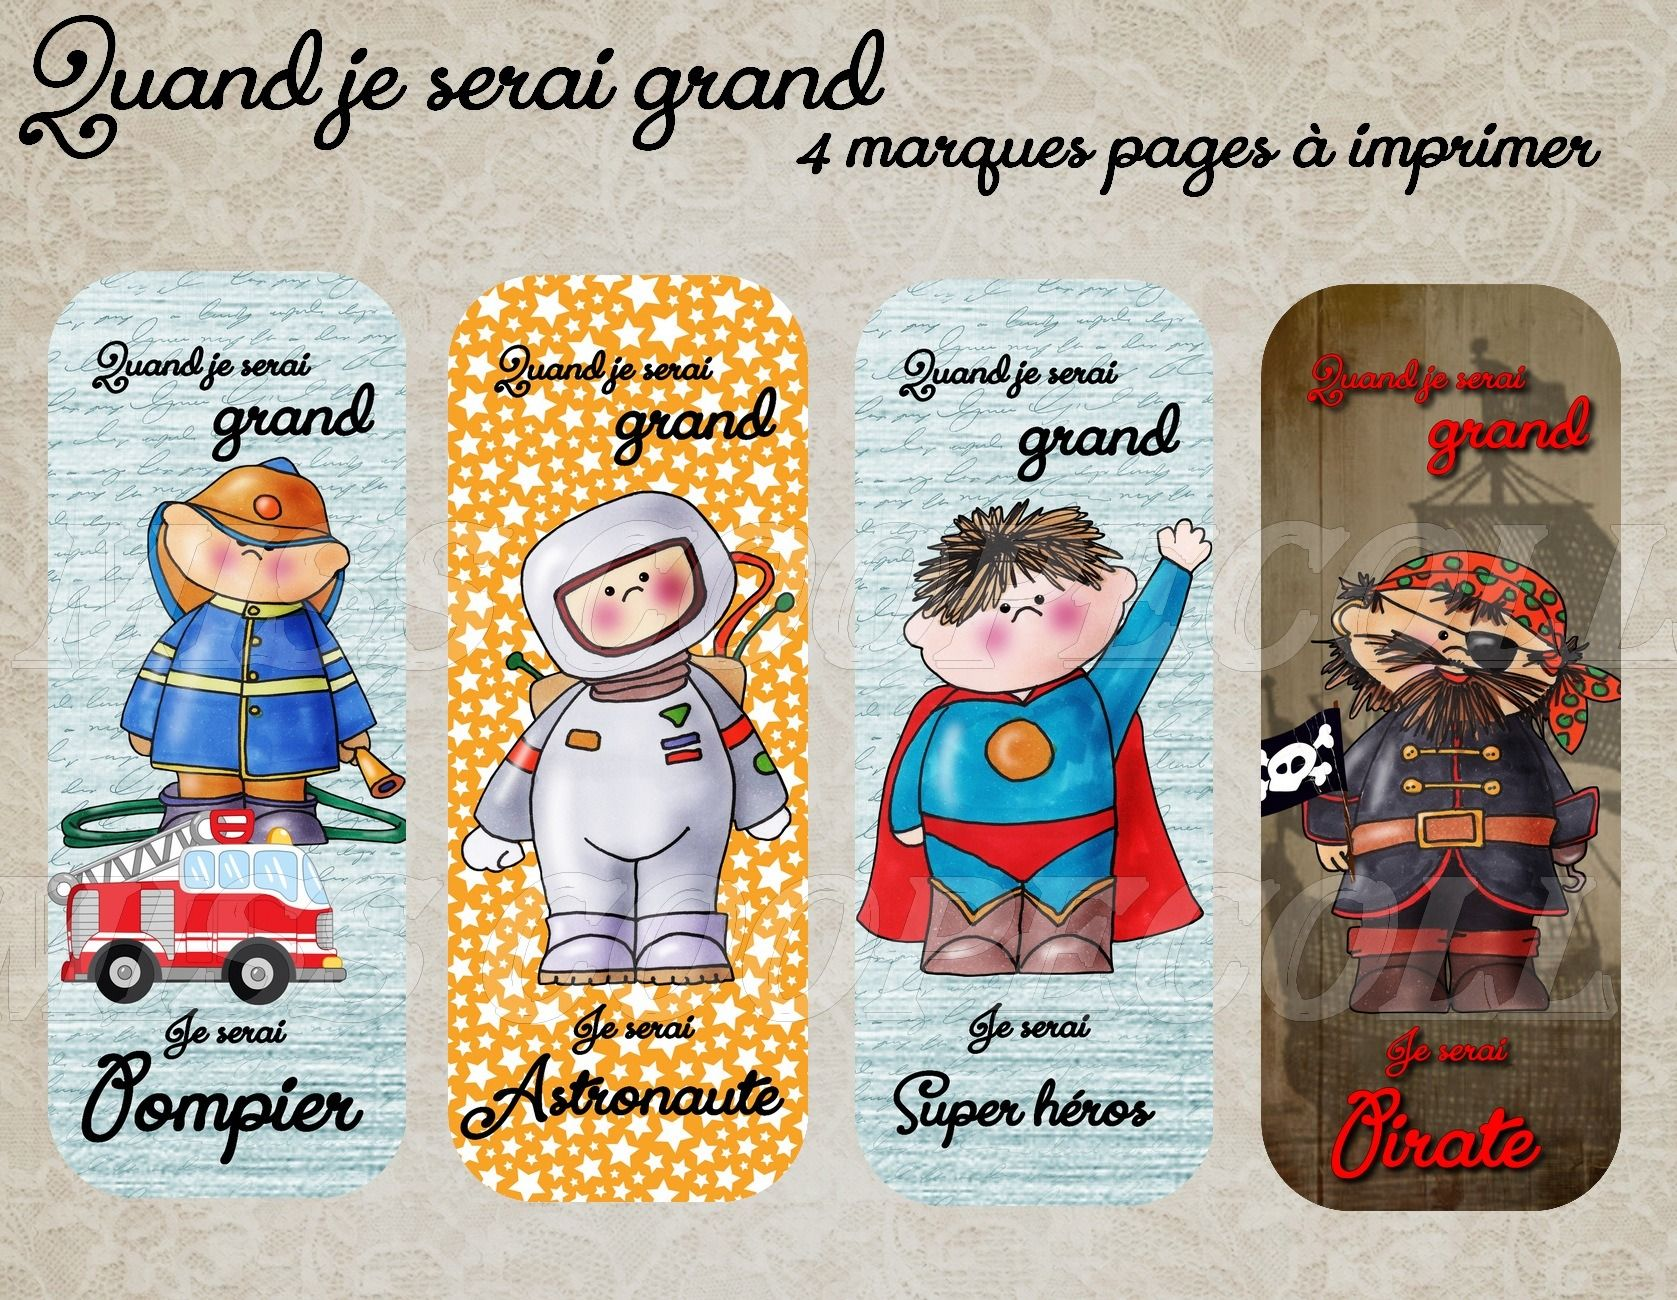 "Fabulous 4 marques pages à imprimer ""quand je serai grand"" images digitales  QW02"